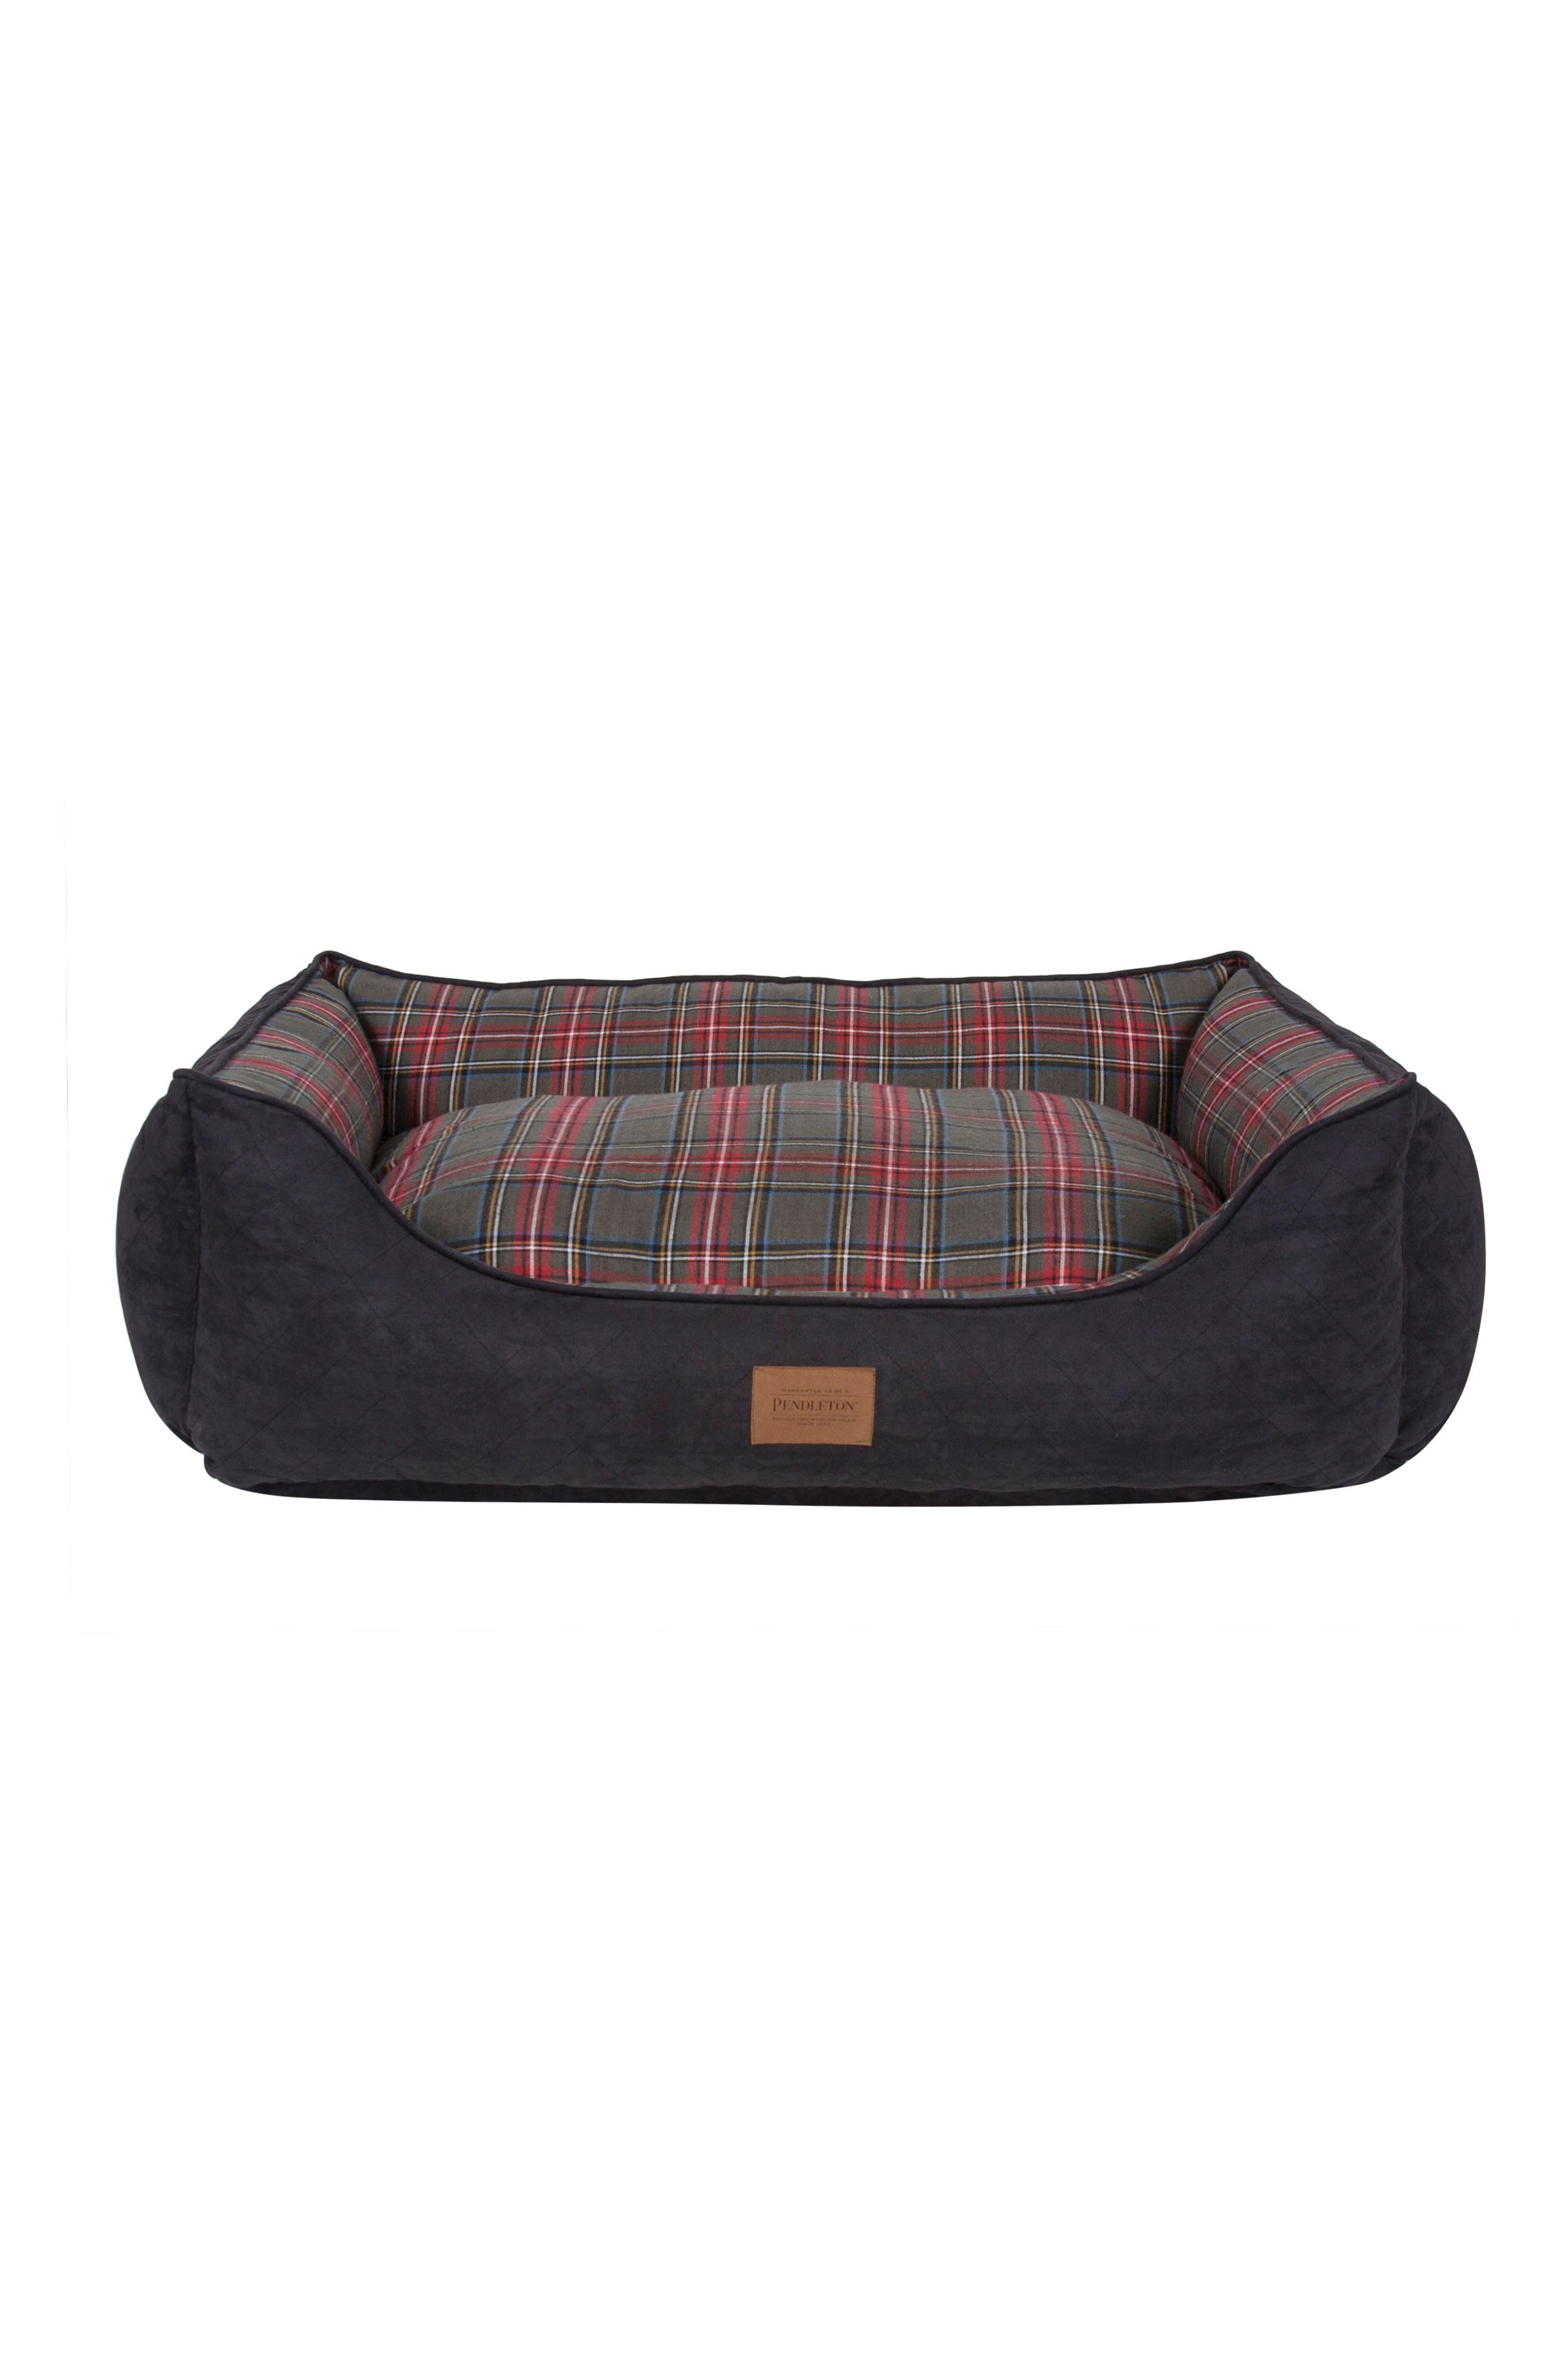 Main Image - Carolina Pet Company x Pendleton Classics Kuddler Pet Bed